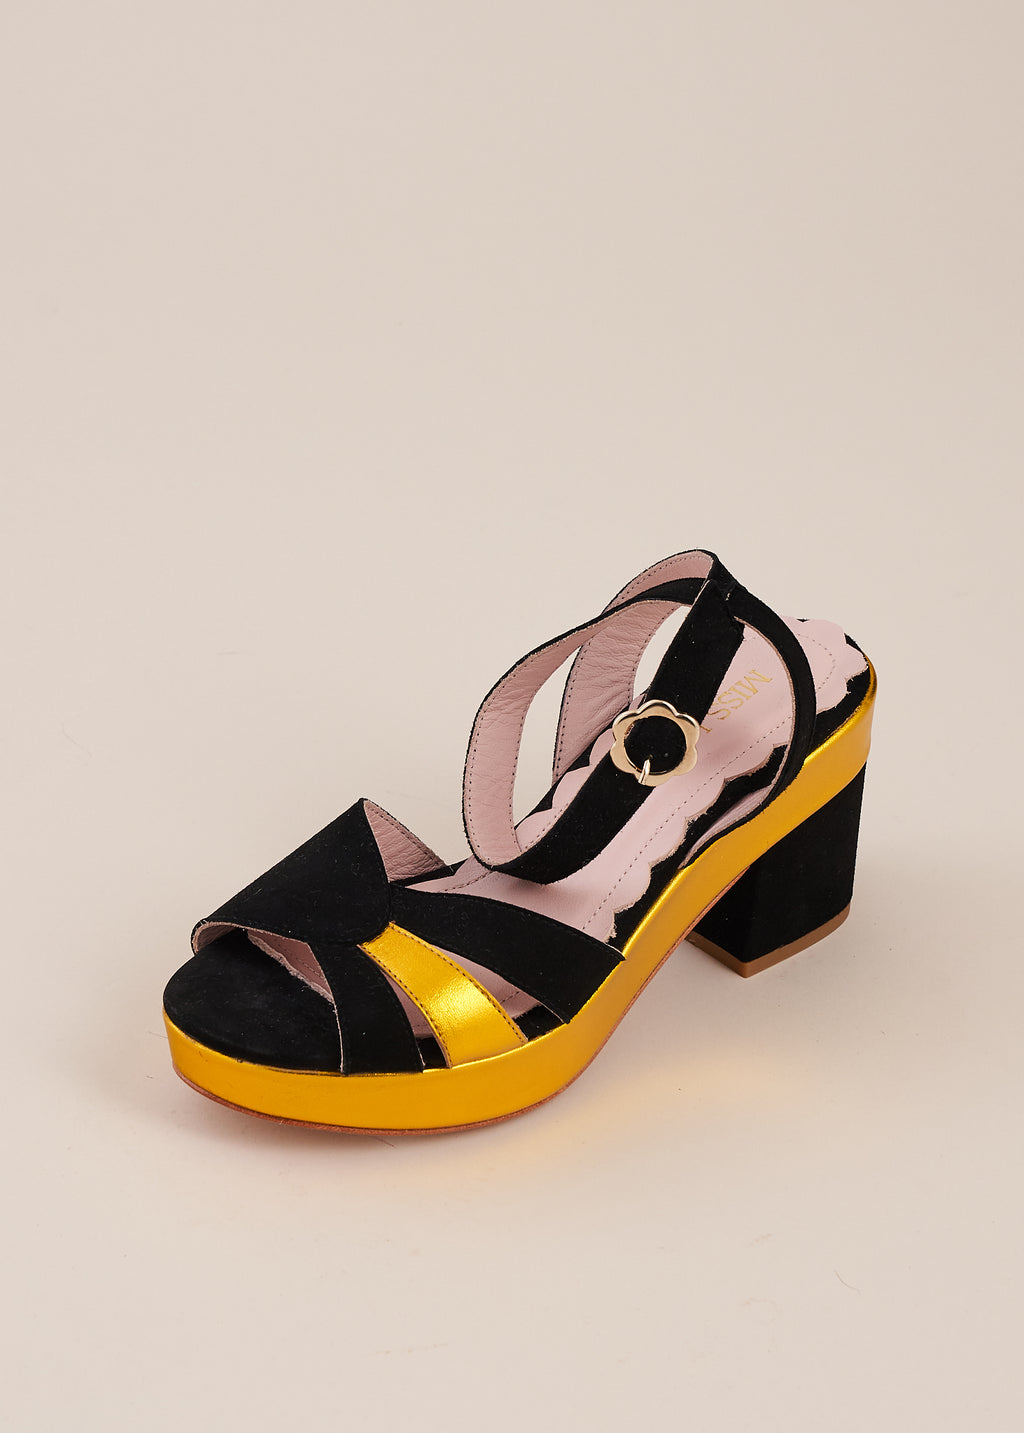 Cora Black Suede and Gold Metallic Leather Sunburst Wedge Sandal